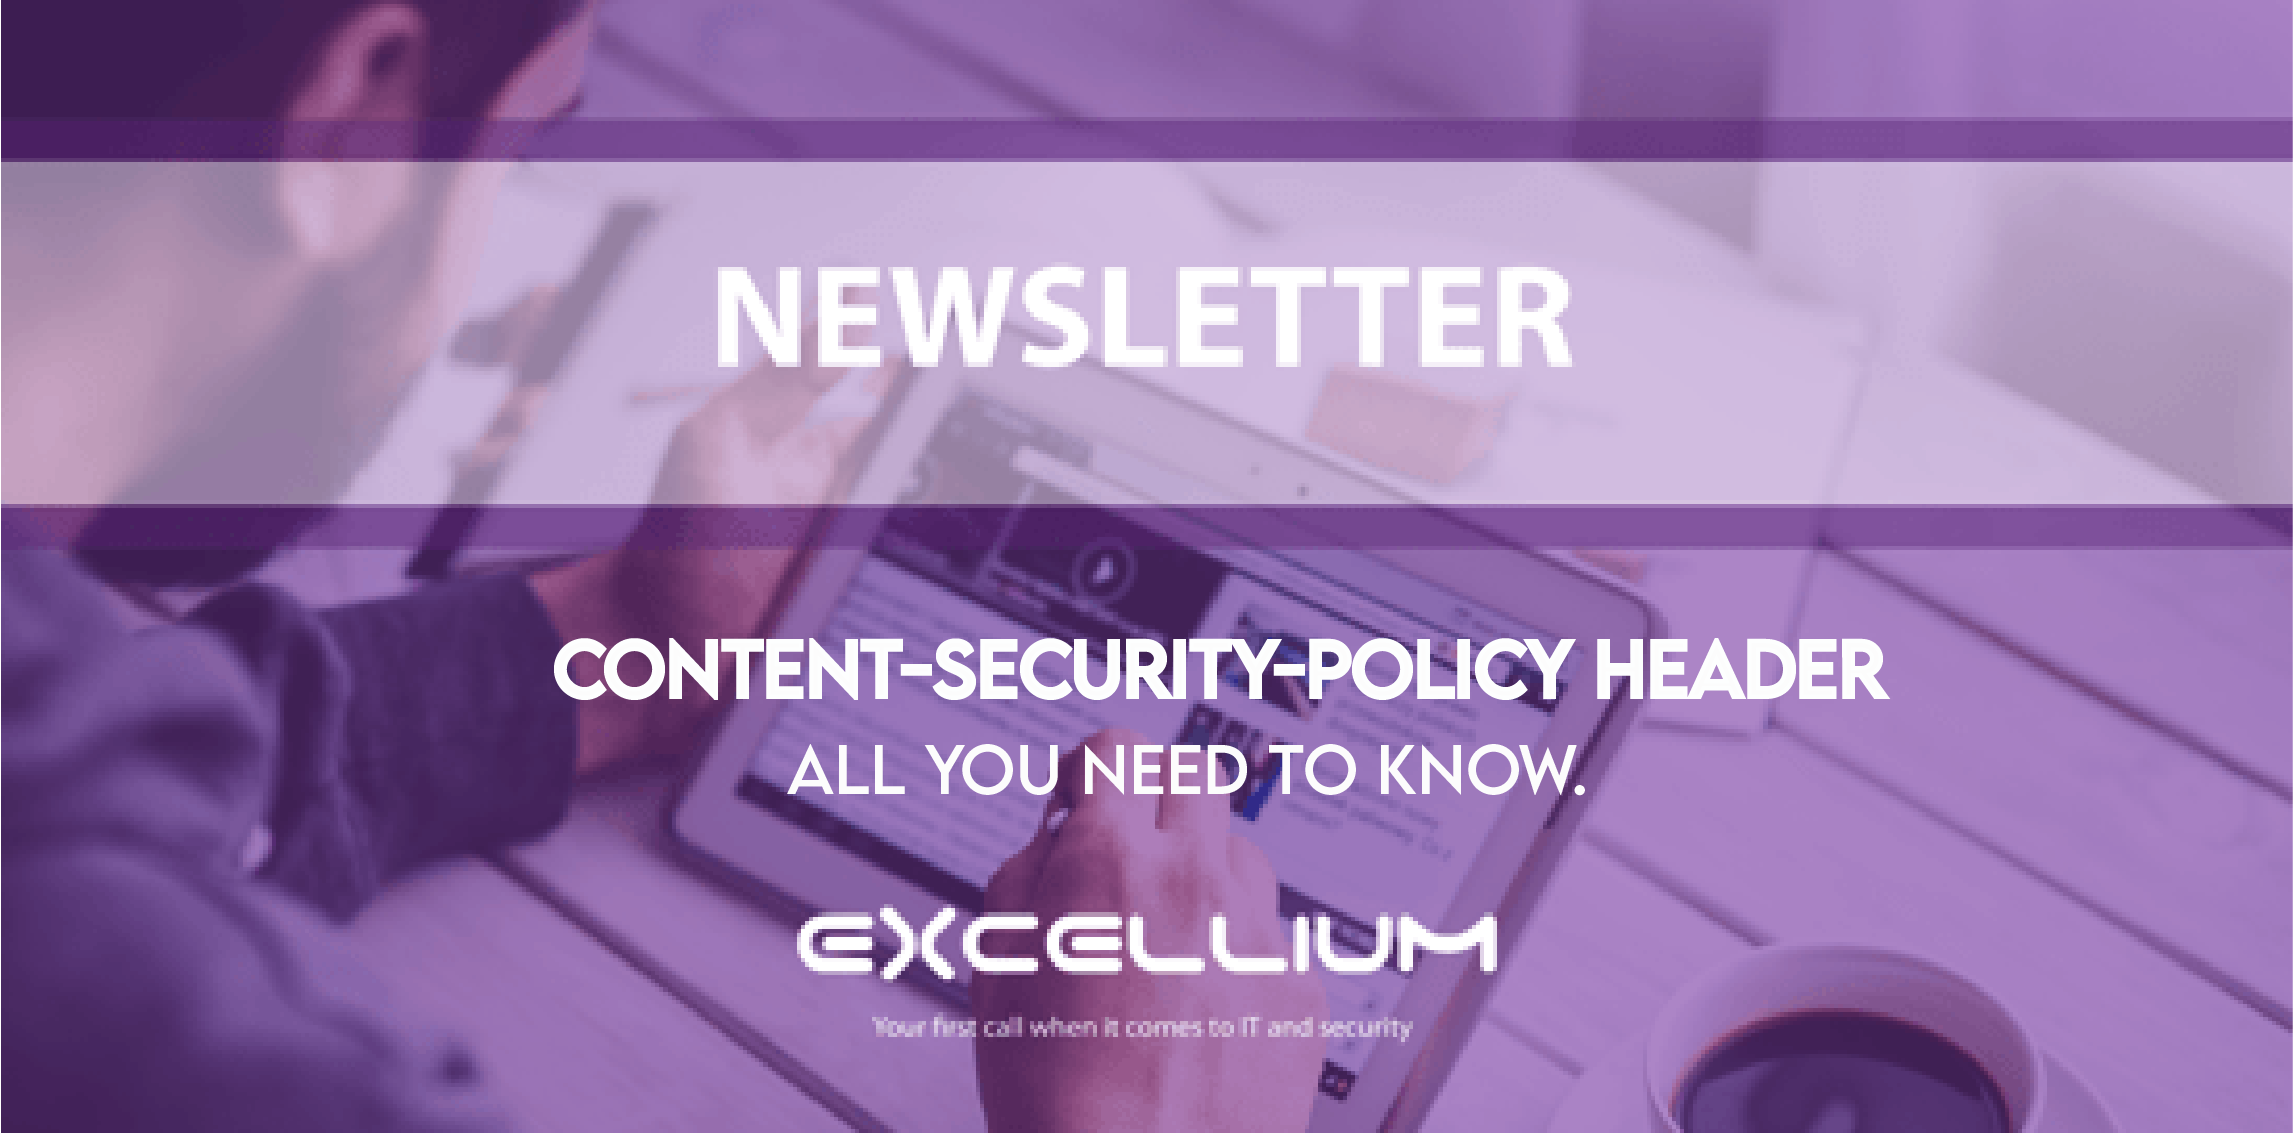 Content-Security-Policy header newsletter - banner